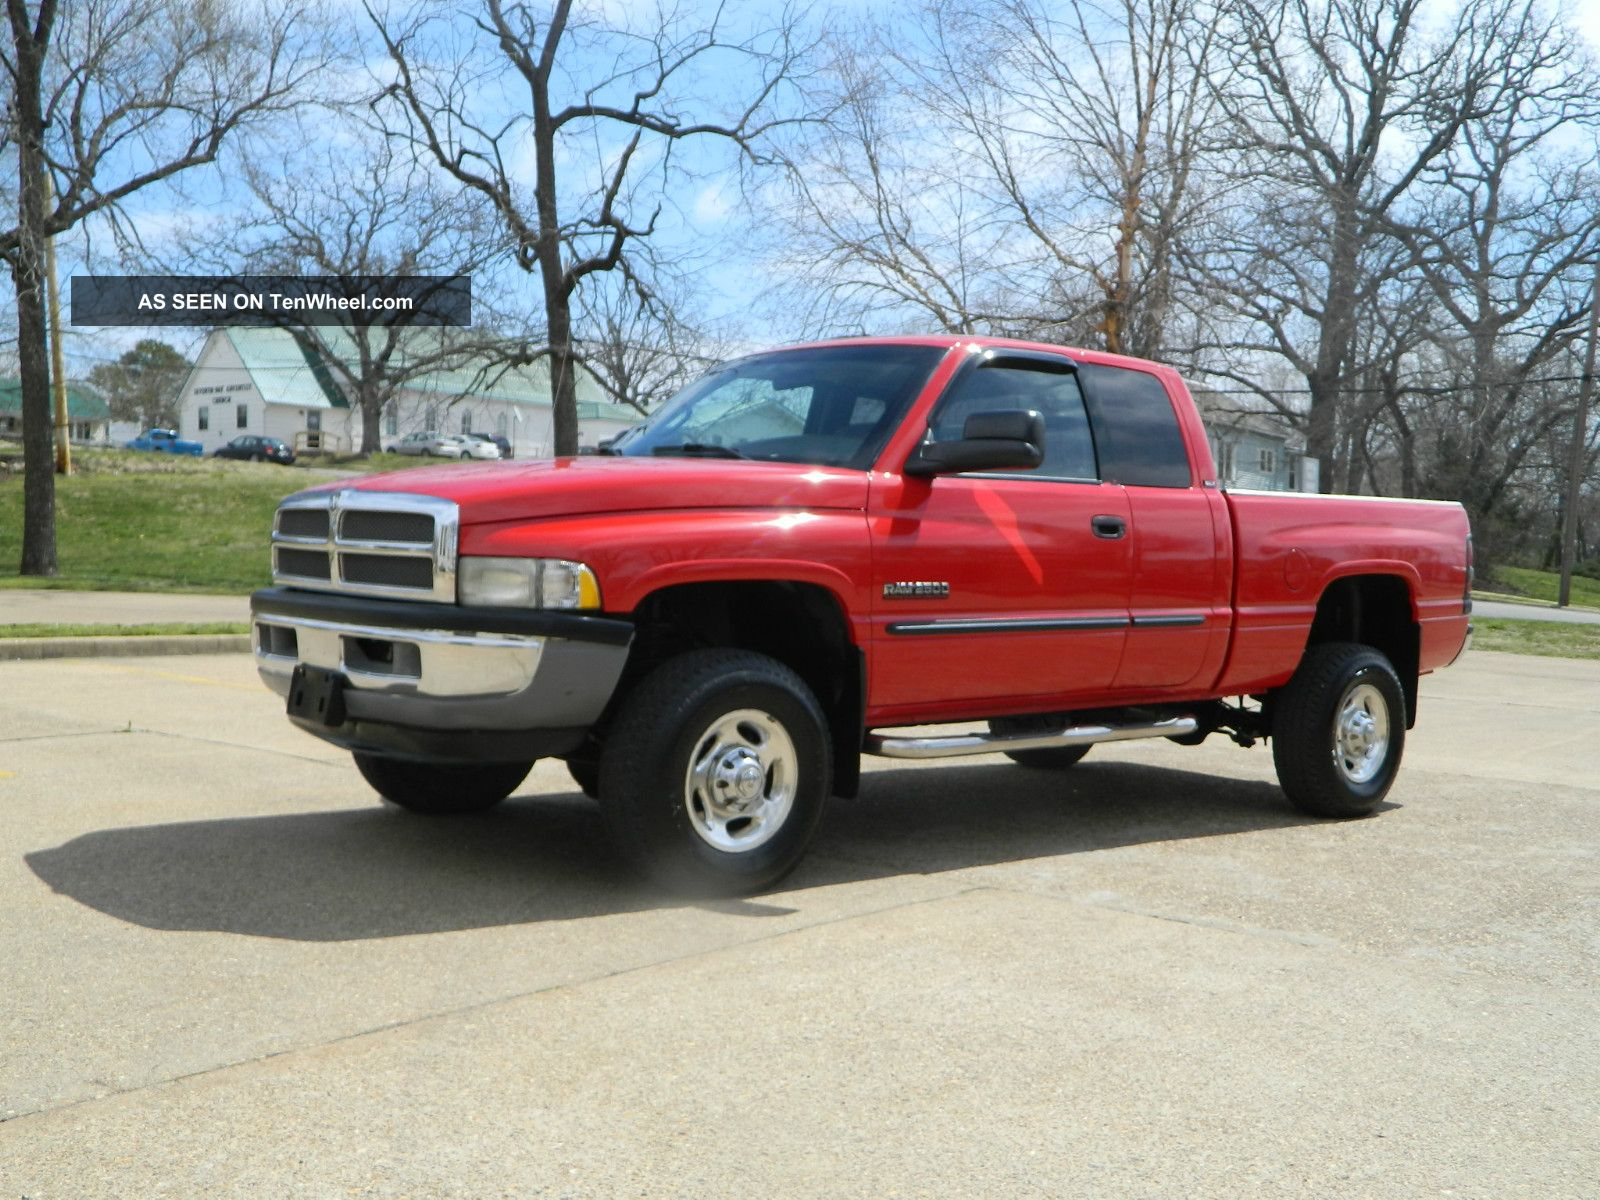 2001 dodge ram 2500 cummins diesel 4x4 slt extended cab ram 2500 photo. Cars Review. Best American Auto & Cars Review